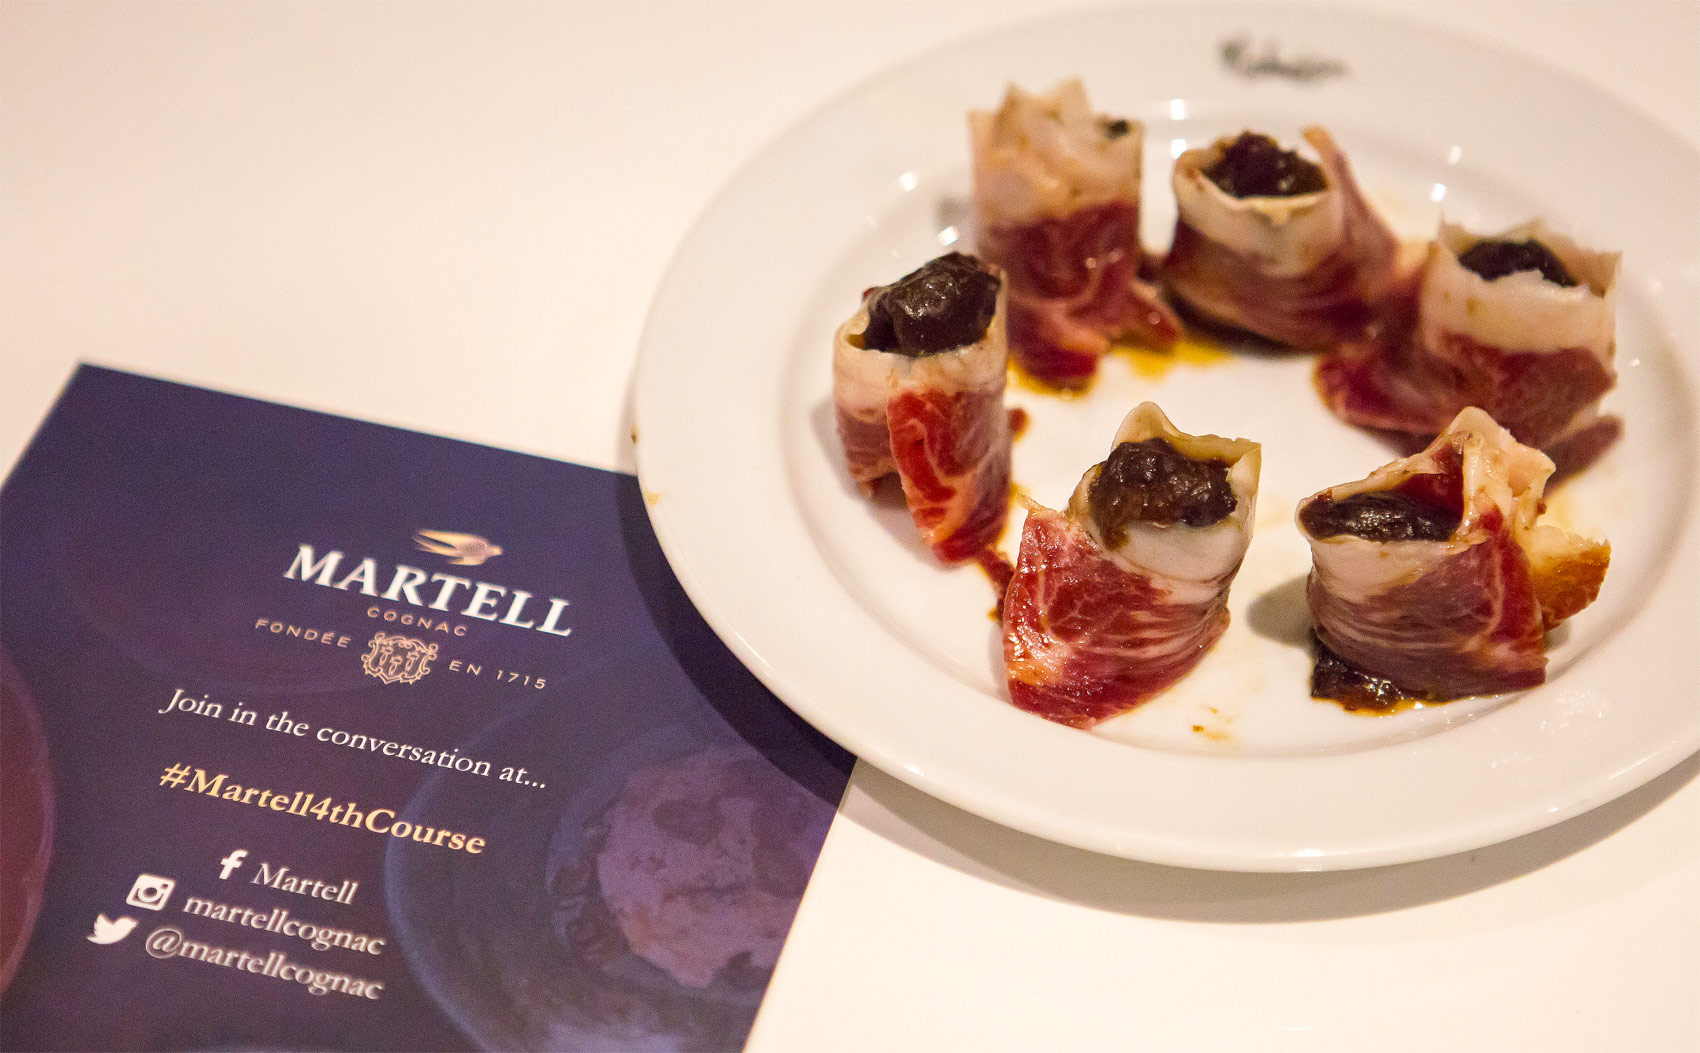 martell-4th-course-3